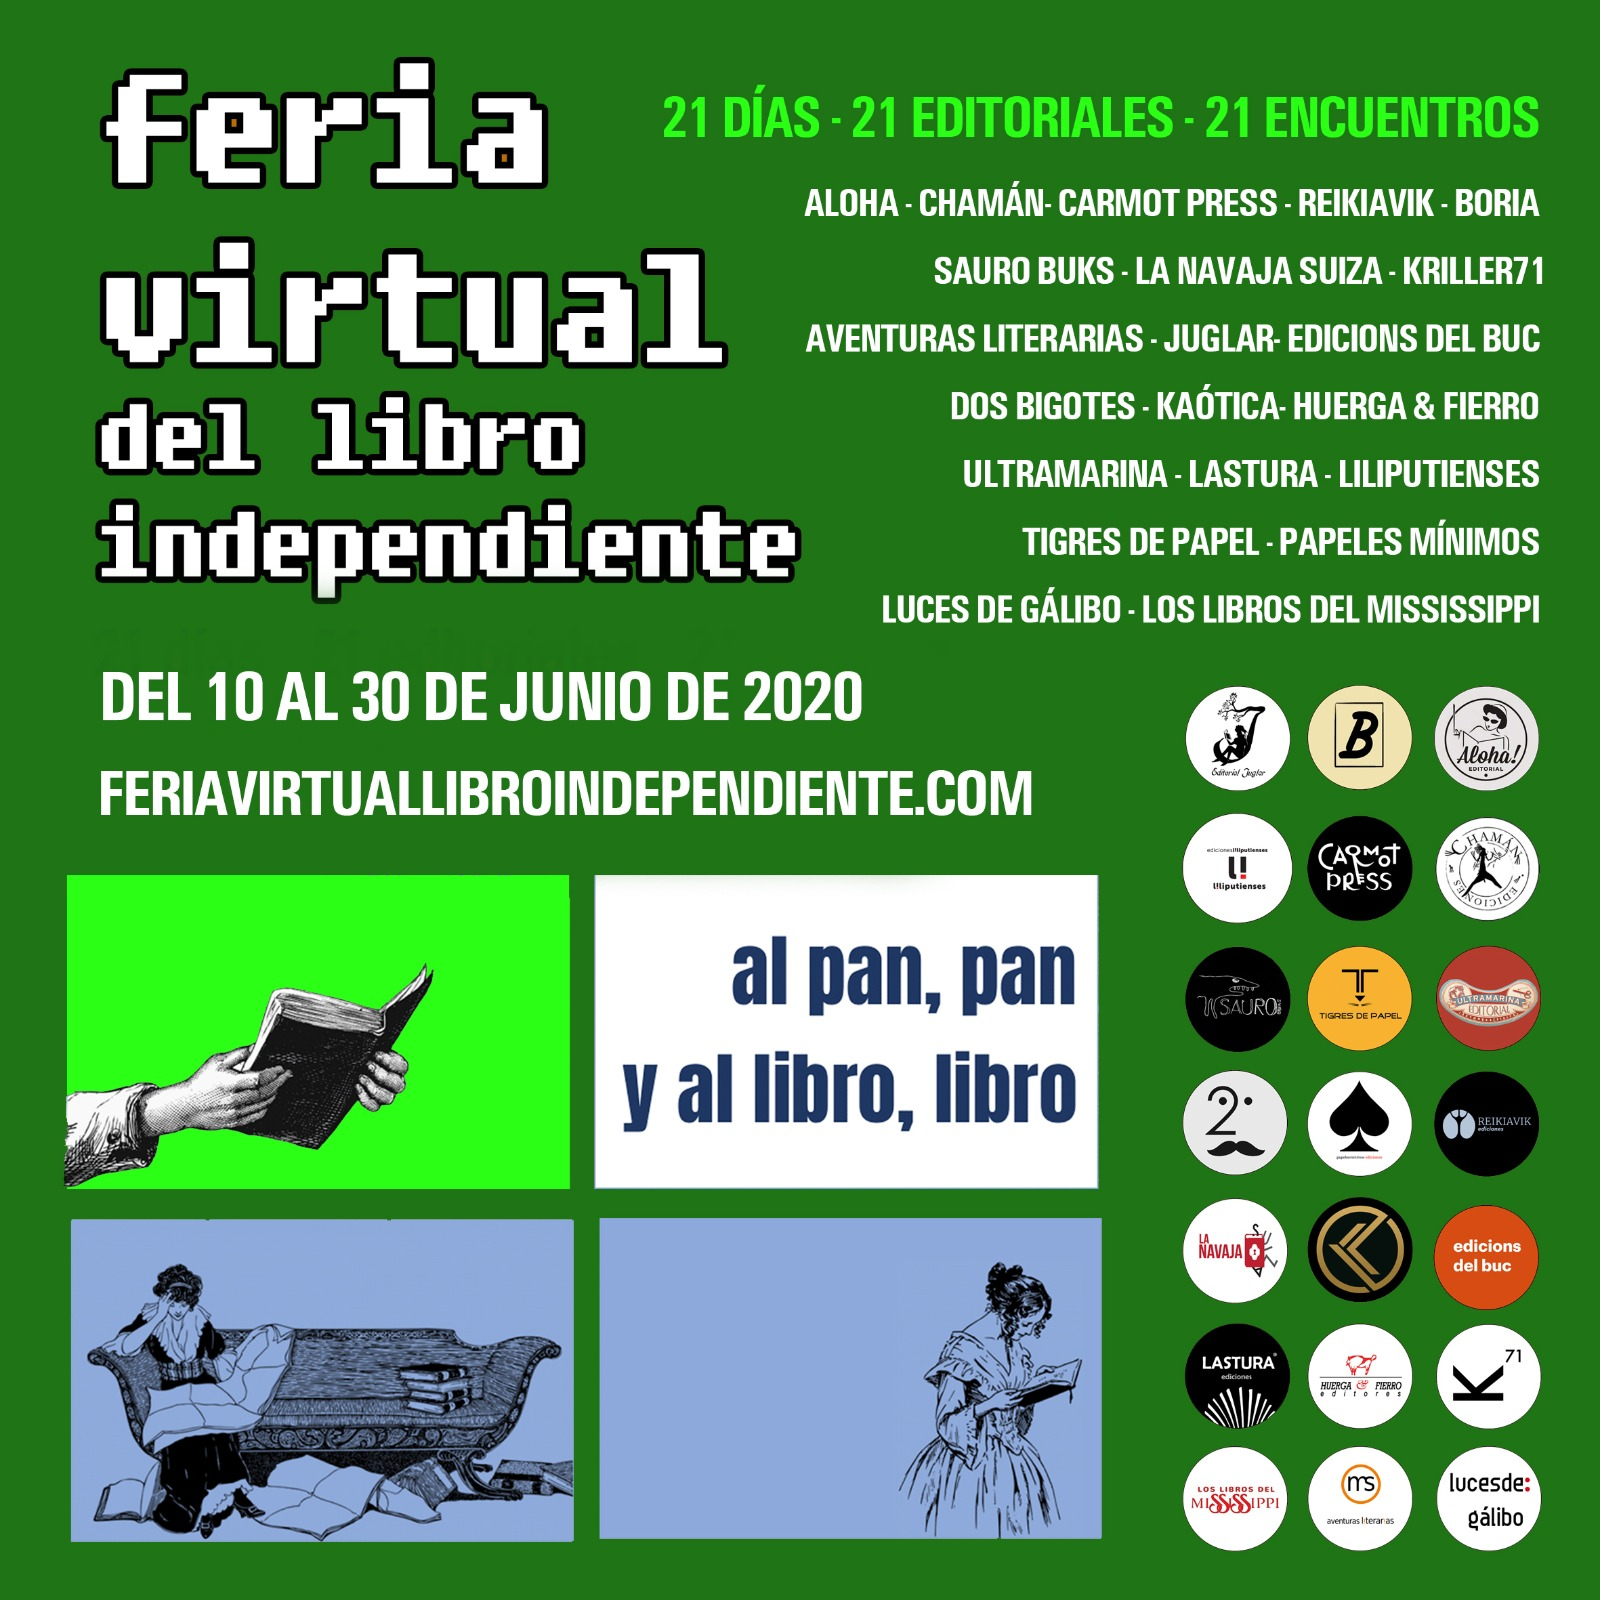 Feria_virtual_libro_independiente